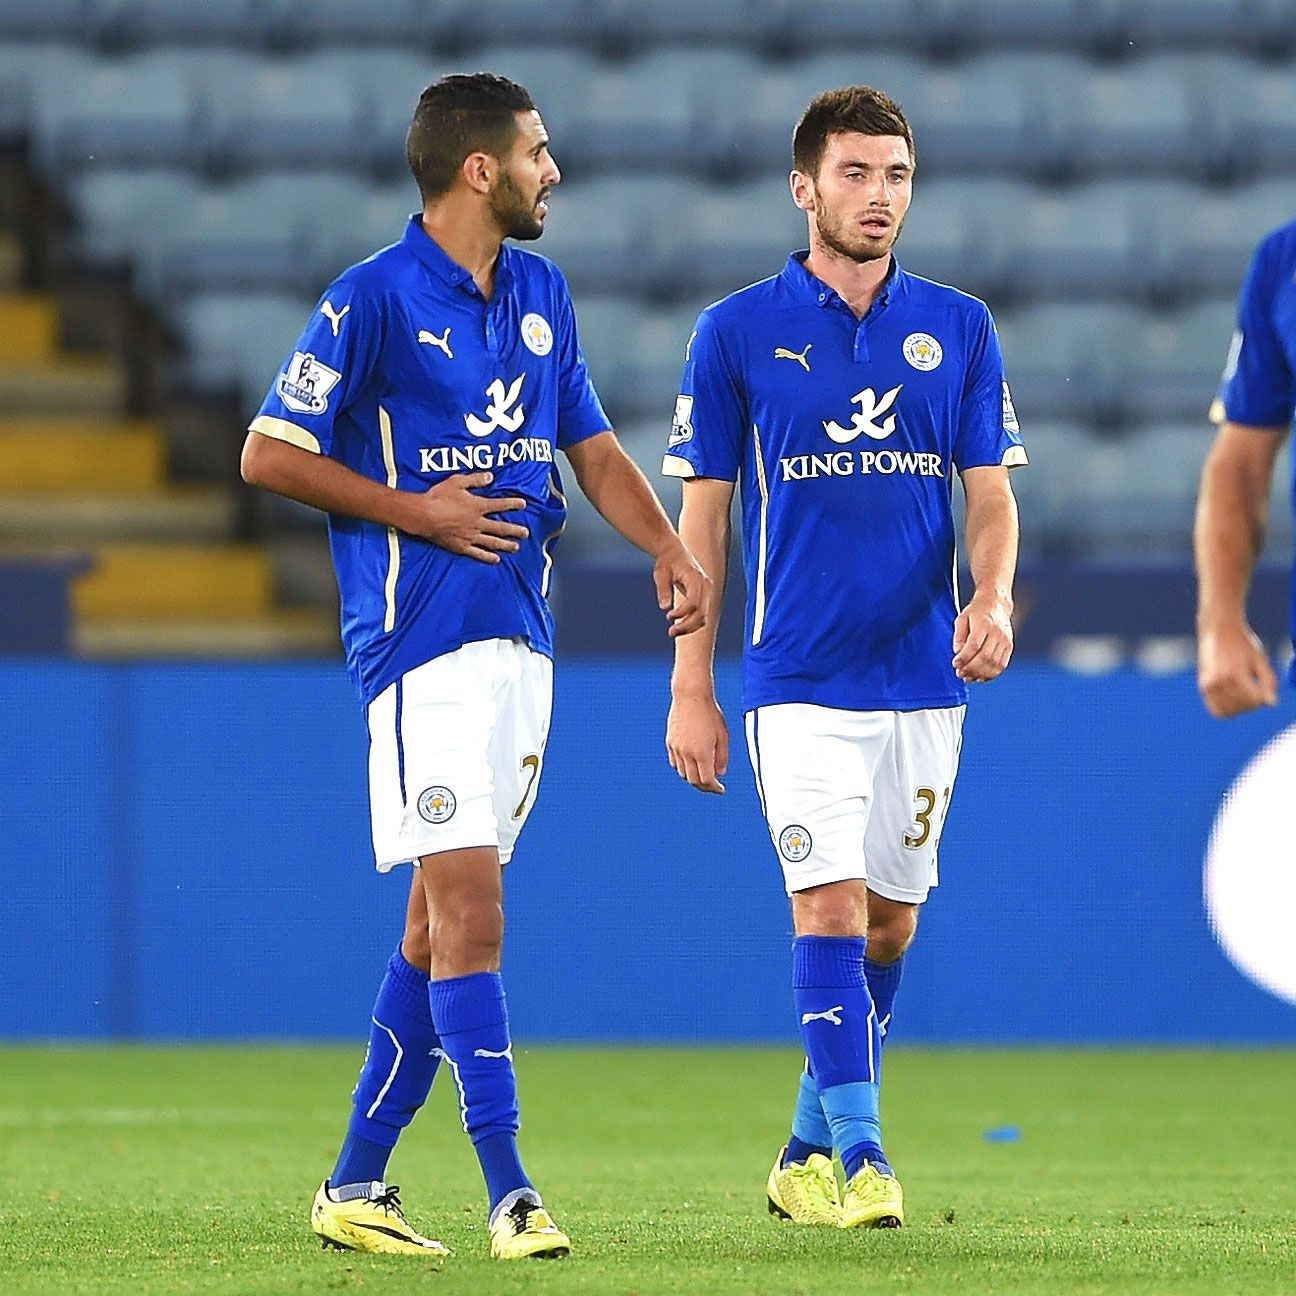 Leicester City will look to shake off their midweek Capital One Cup defeat when they face Arsenal.